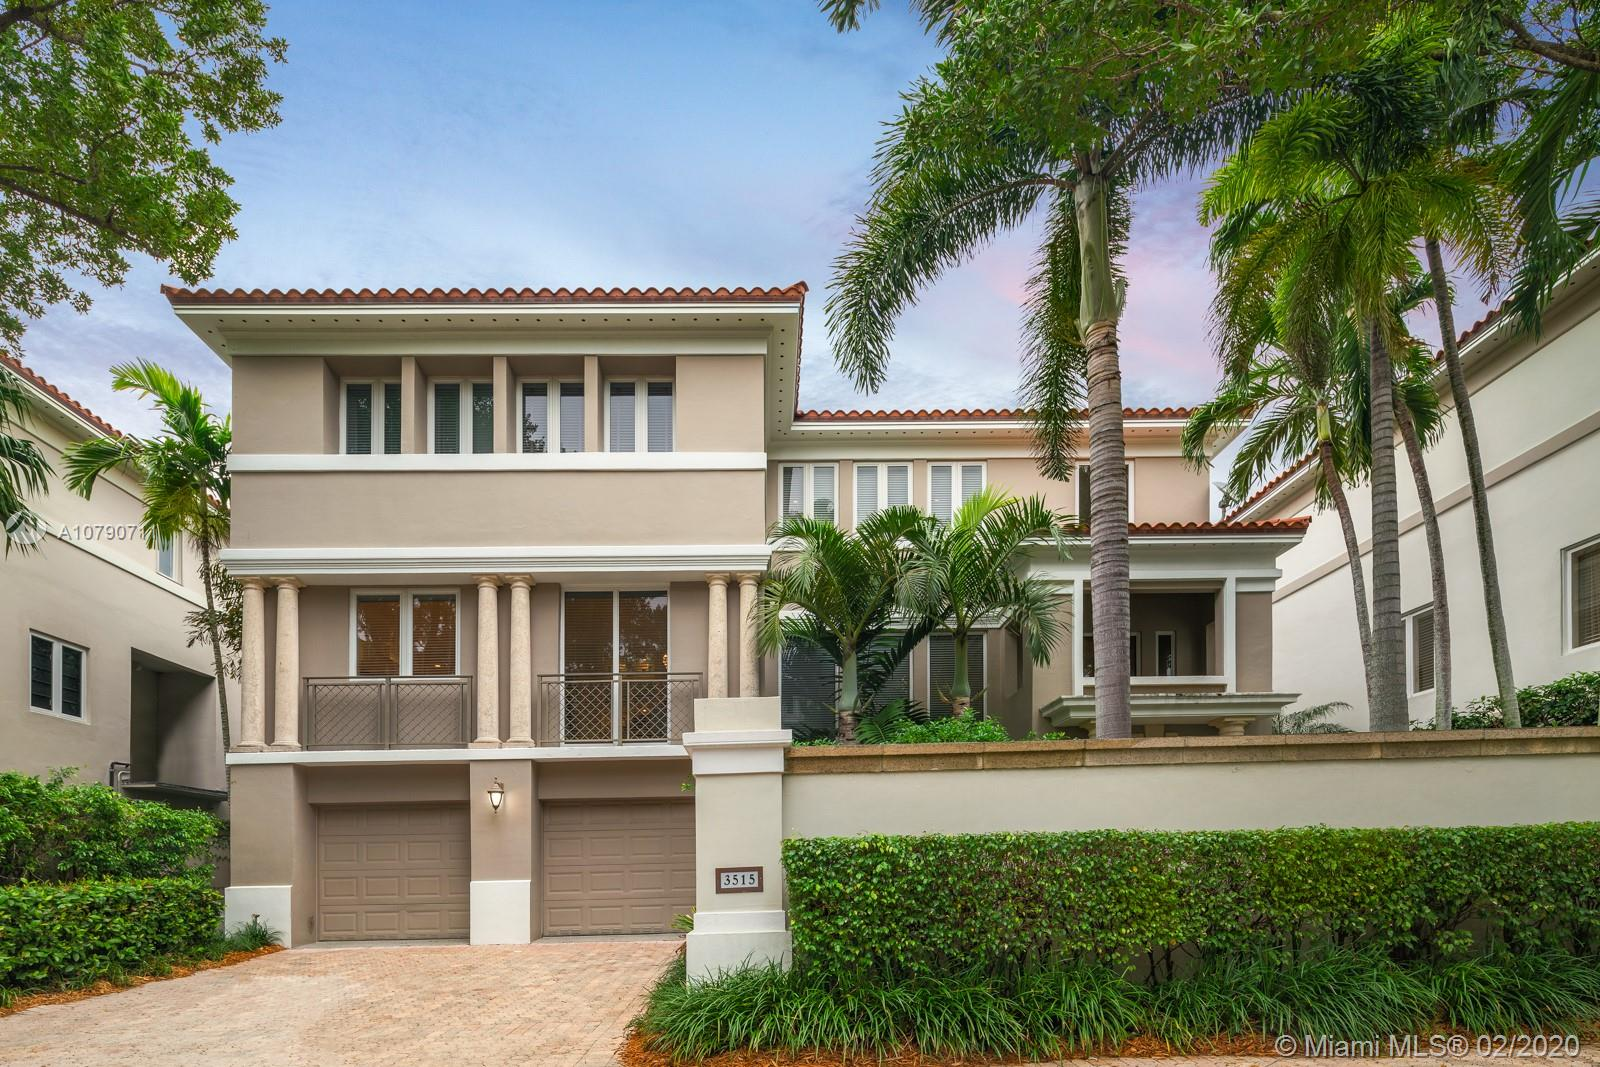 Nestled in the gated Bayshore Villas of Coconut Grove is a 6,972 sq ft NYC Chic three-story home with 2 car garage. Greeted by a triple-height foyer, the first floor opens to the family room, bar, gym/den, and a full bathroom. The elevator or stairs to the second floor lead to a formal living room, formal dining room, half bath, and an eat-in kitchen with walk-in pantry and Wolf and Subzero appliances. The third floor includes an office, two bedrooms with full ensuite bathrooms, master bedroom with sitting area, two walk-in closets, and master bathroom with dual sinks, open shower, and modern tub. The townhome also comes with a private boat slip on Biscayne Bay, plus access to community amenities: tennis courts, heated pool & spa, putting green, and easy access to neighboring parks.